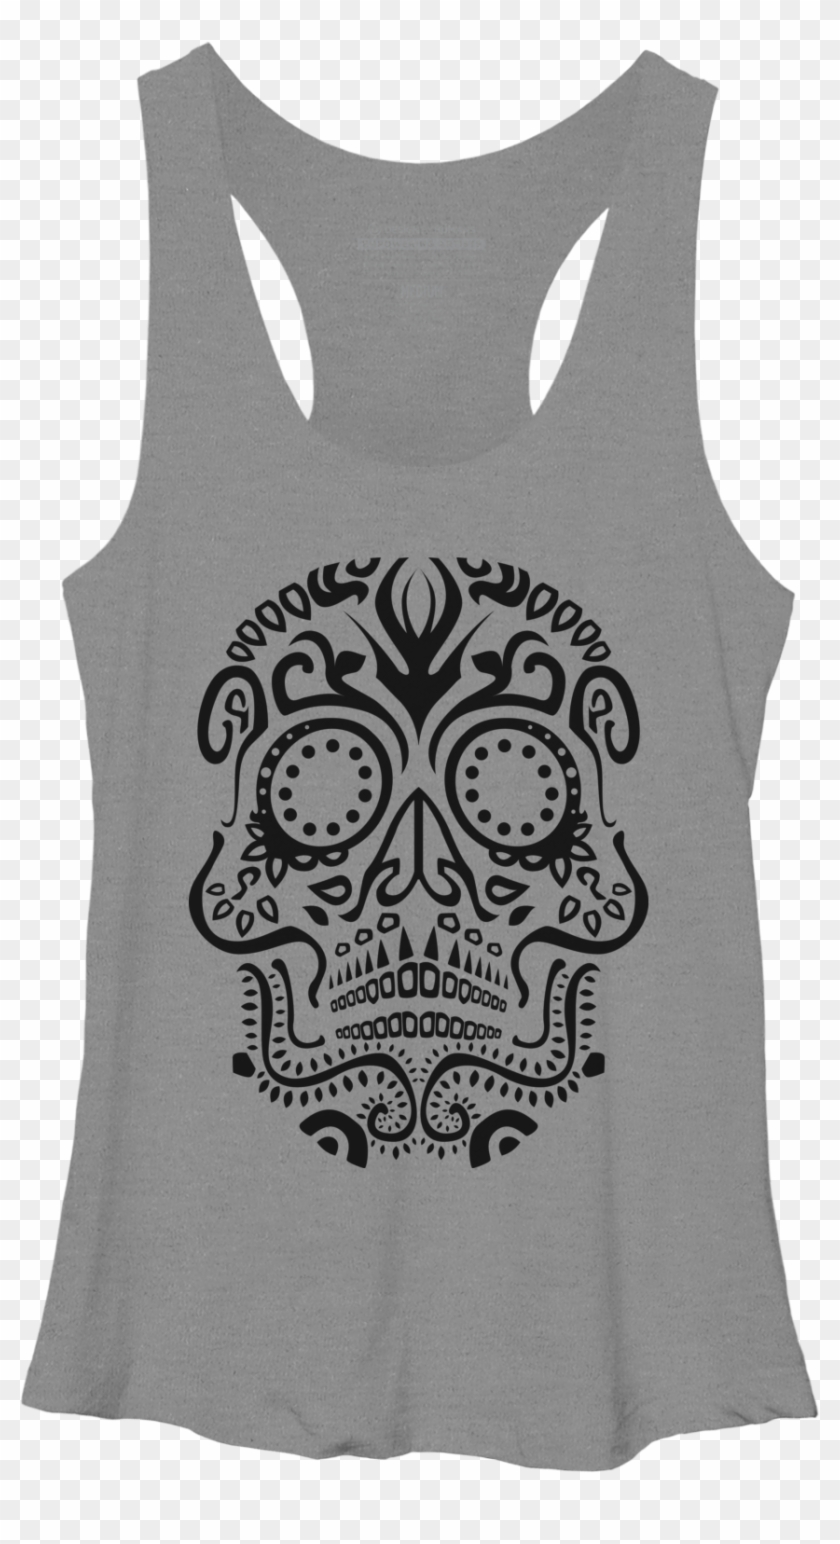 Day Of The Dead Skull No2 Racerback - Active Tank Clipart #4687307